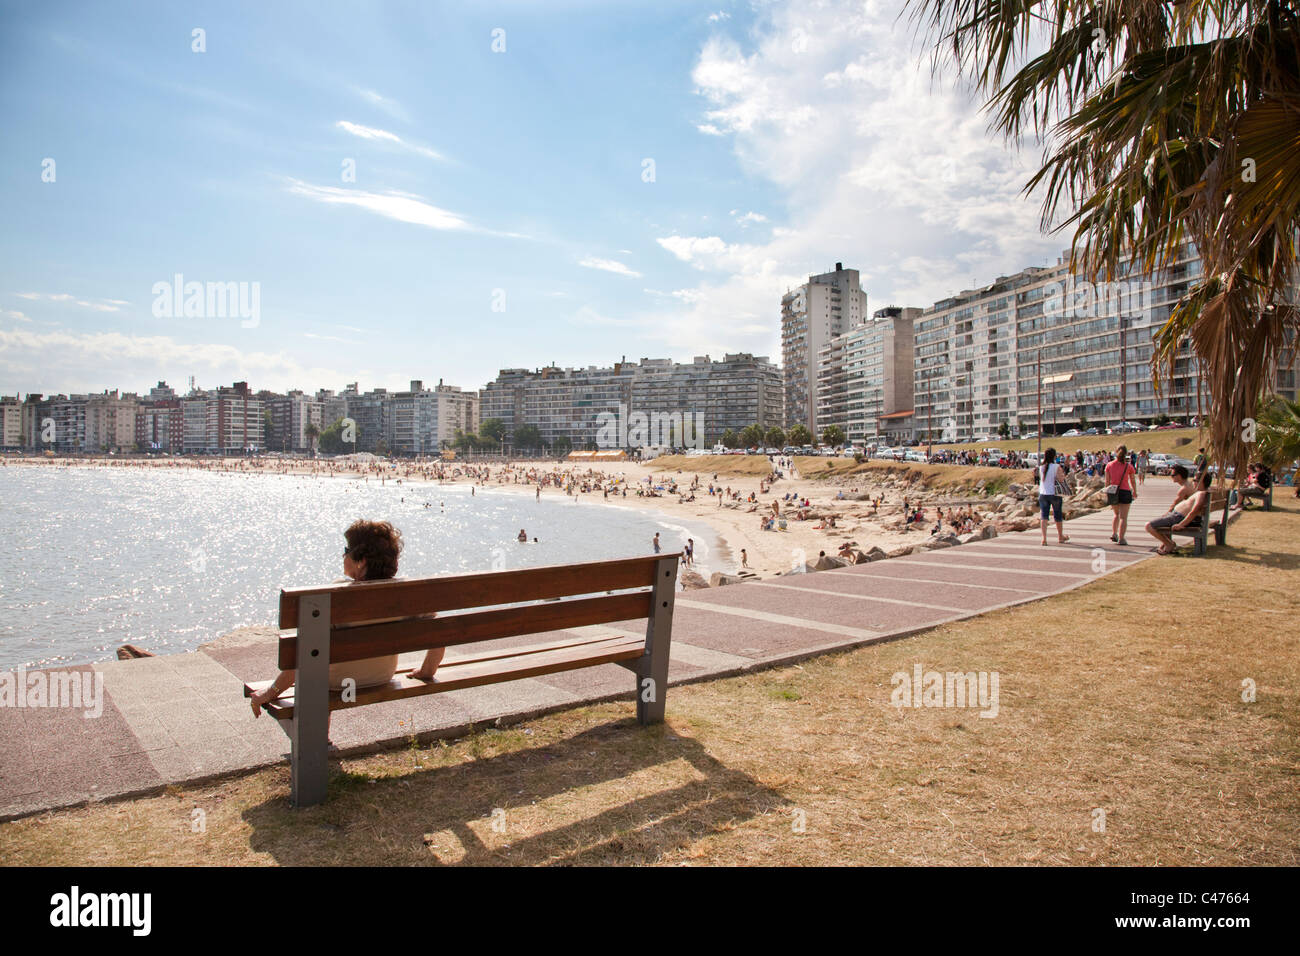 Playa Pocitos, City Beach, Montevideo, Uruguay. Stock Photo